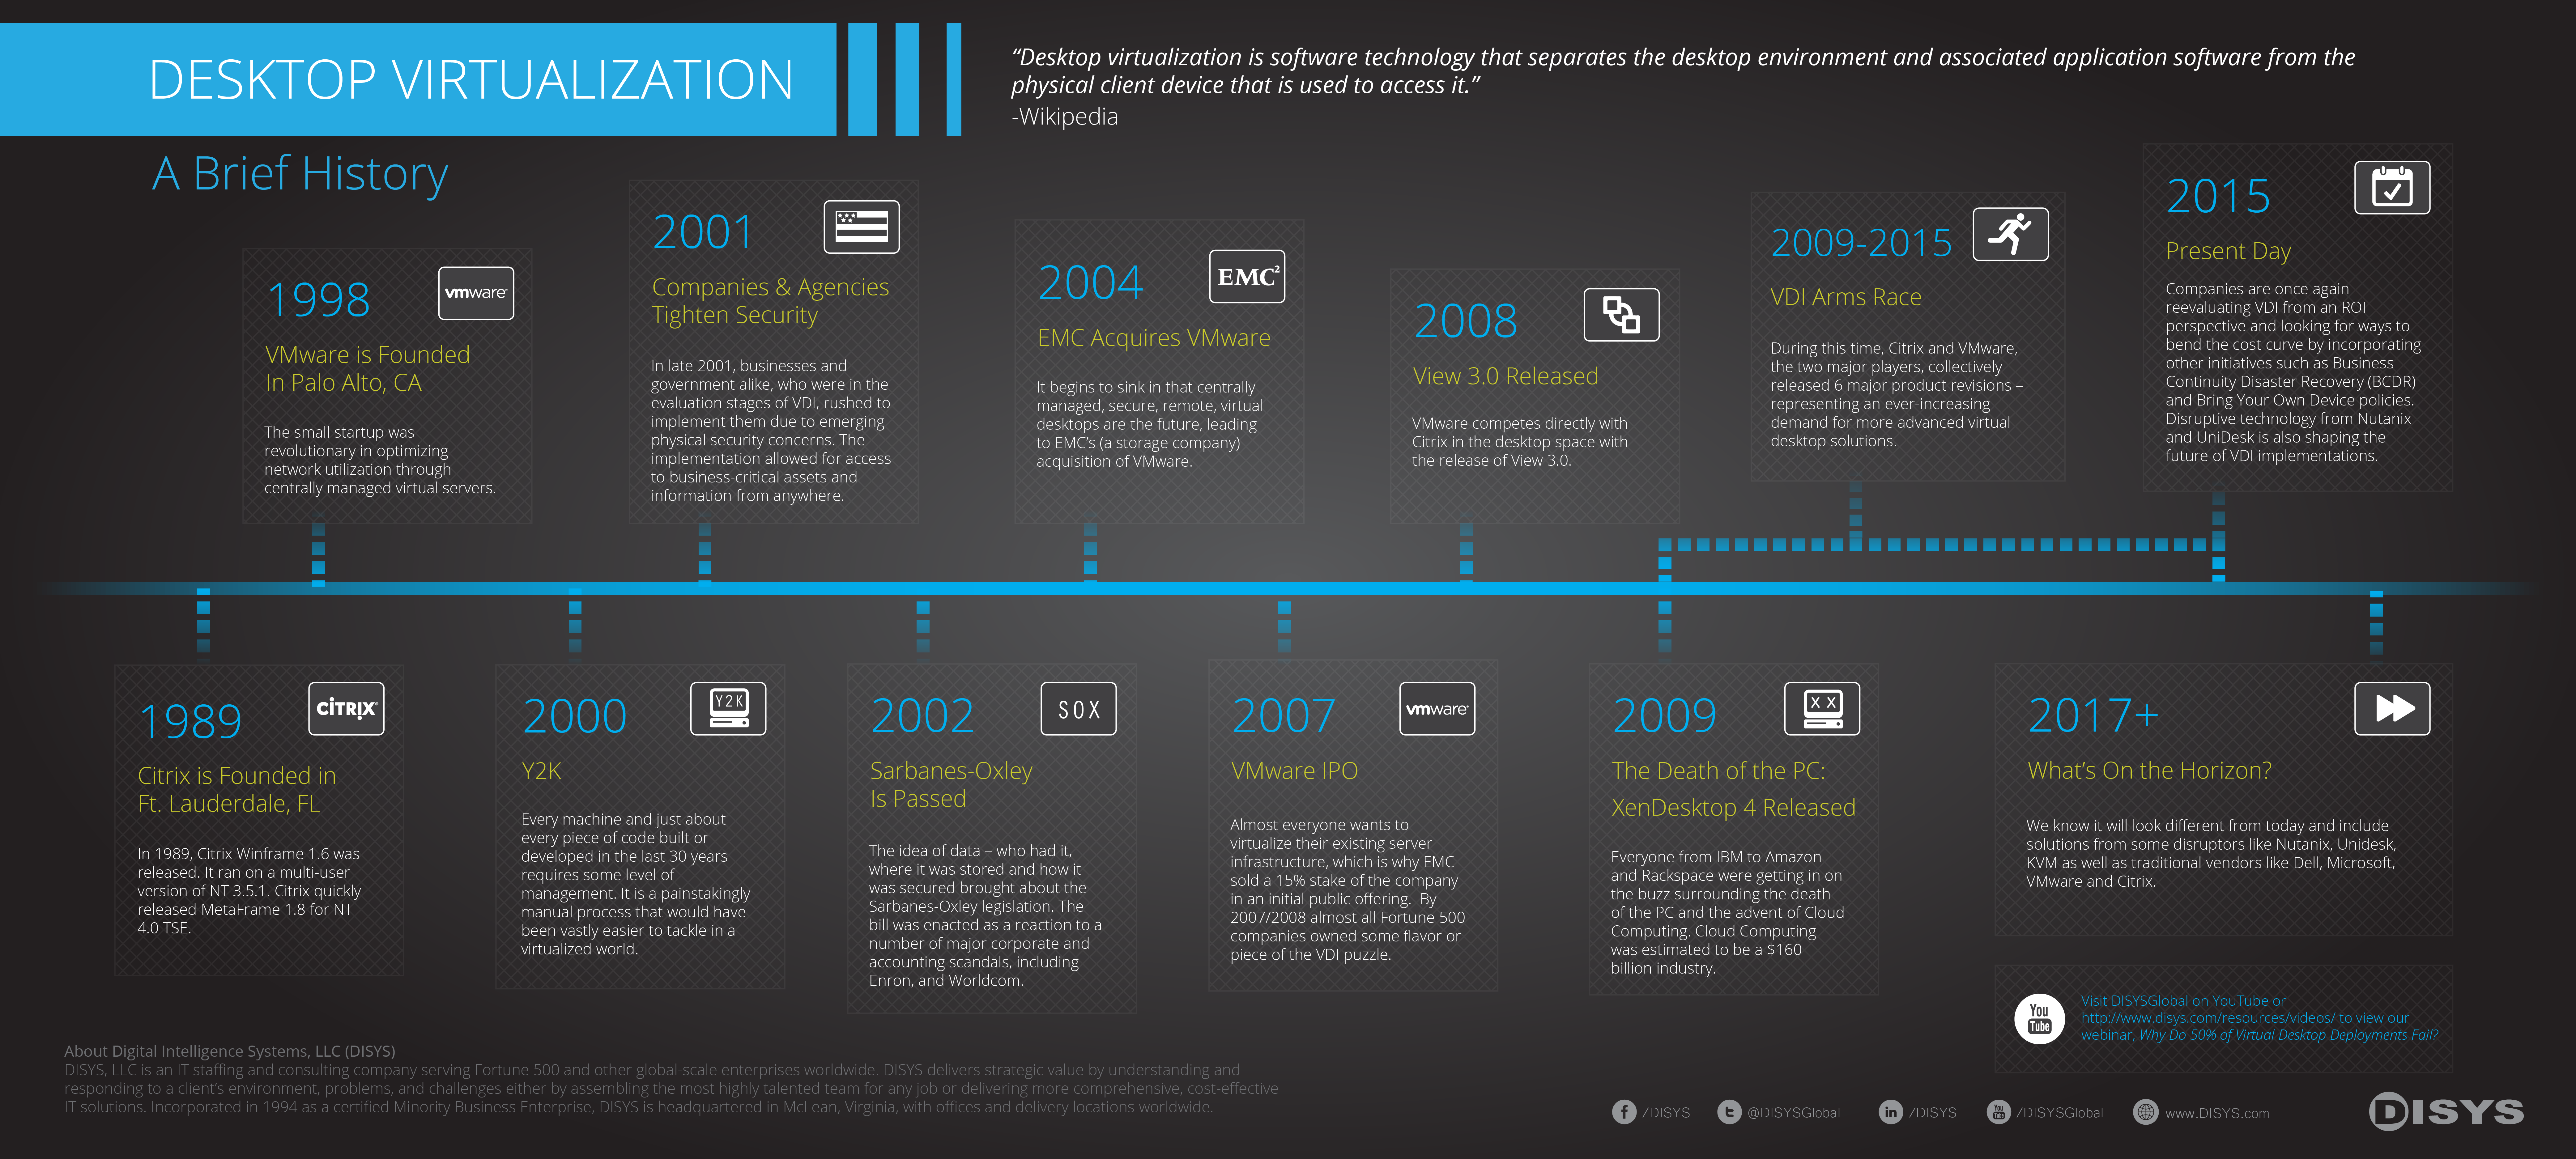 Infographic: Virtual Desktop History